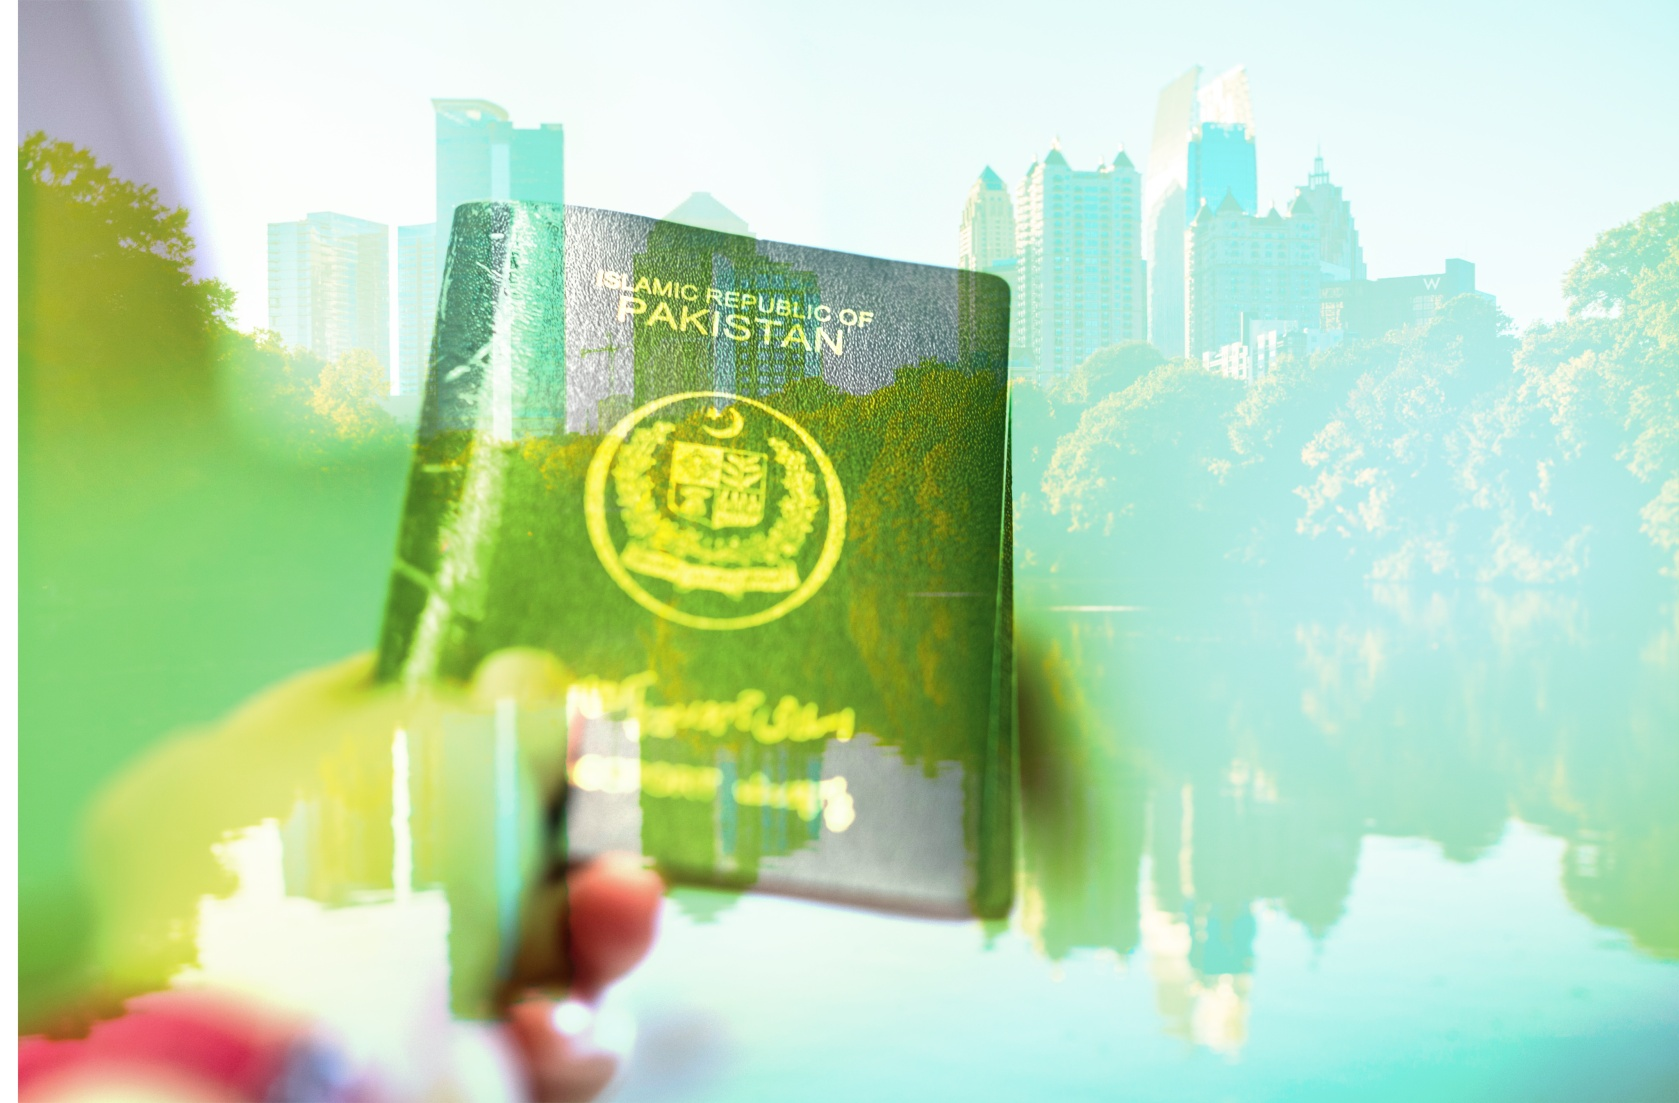 hand showing Pakistani passport